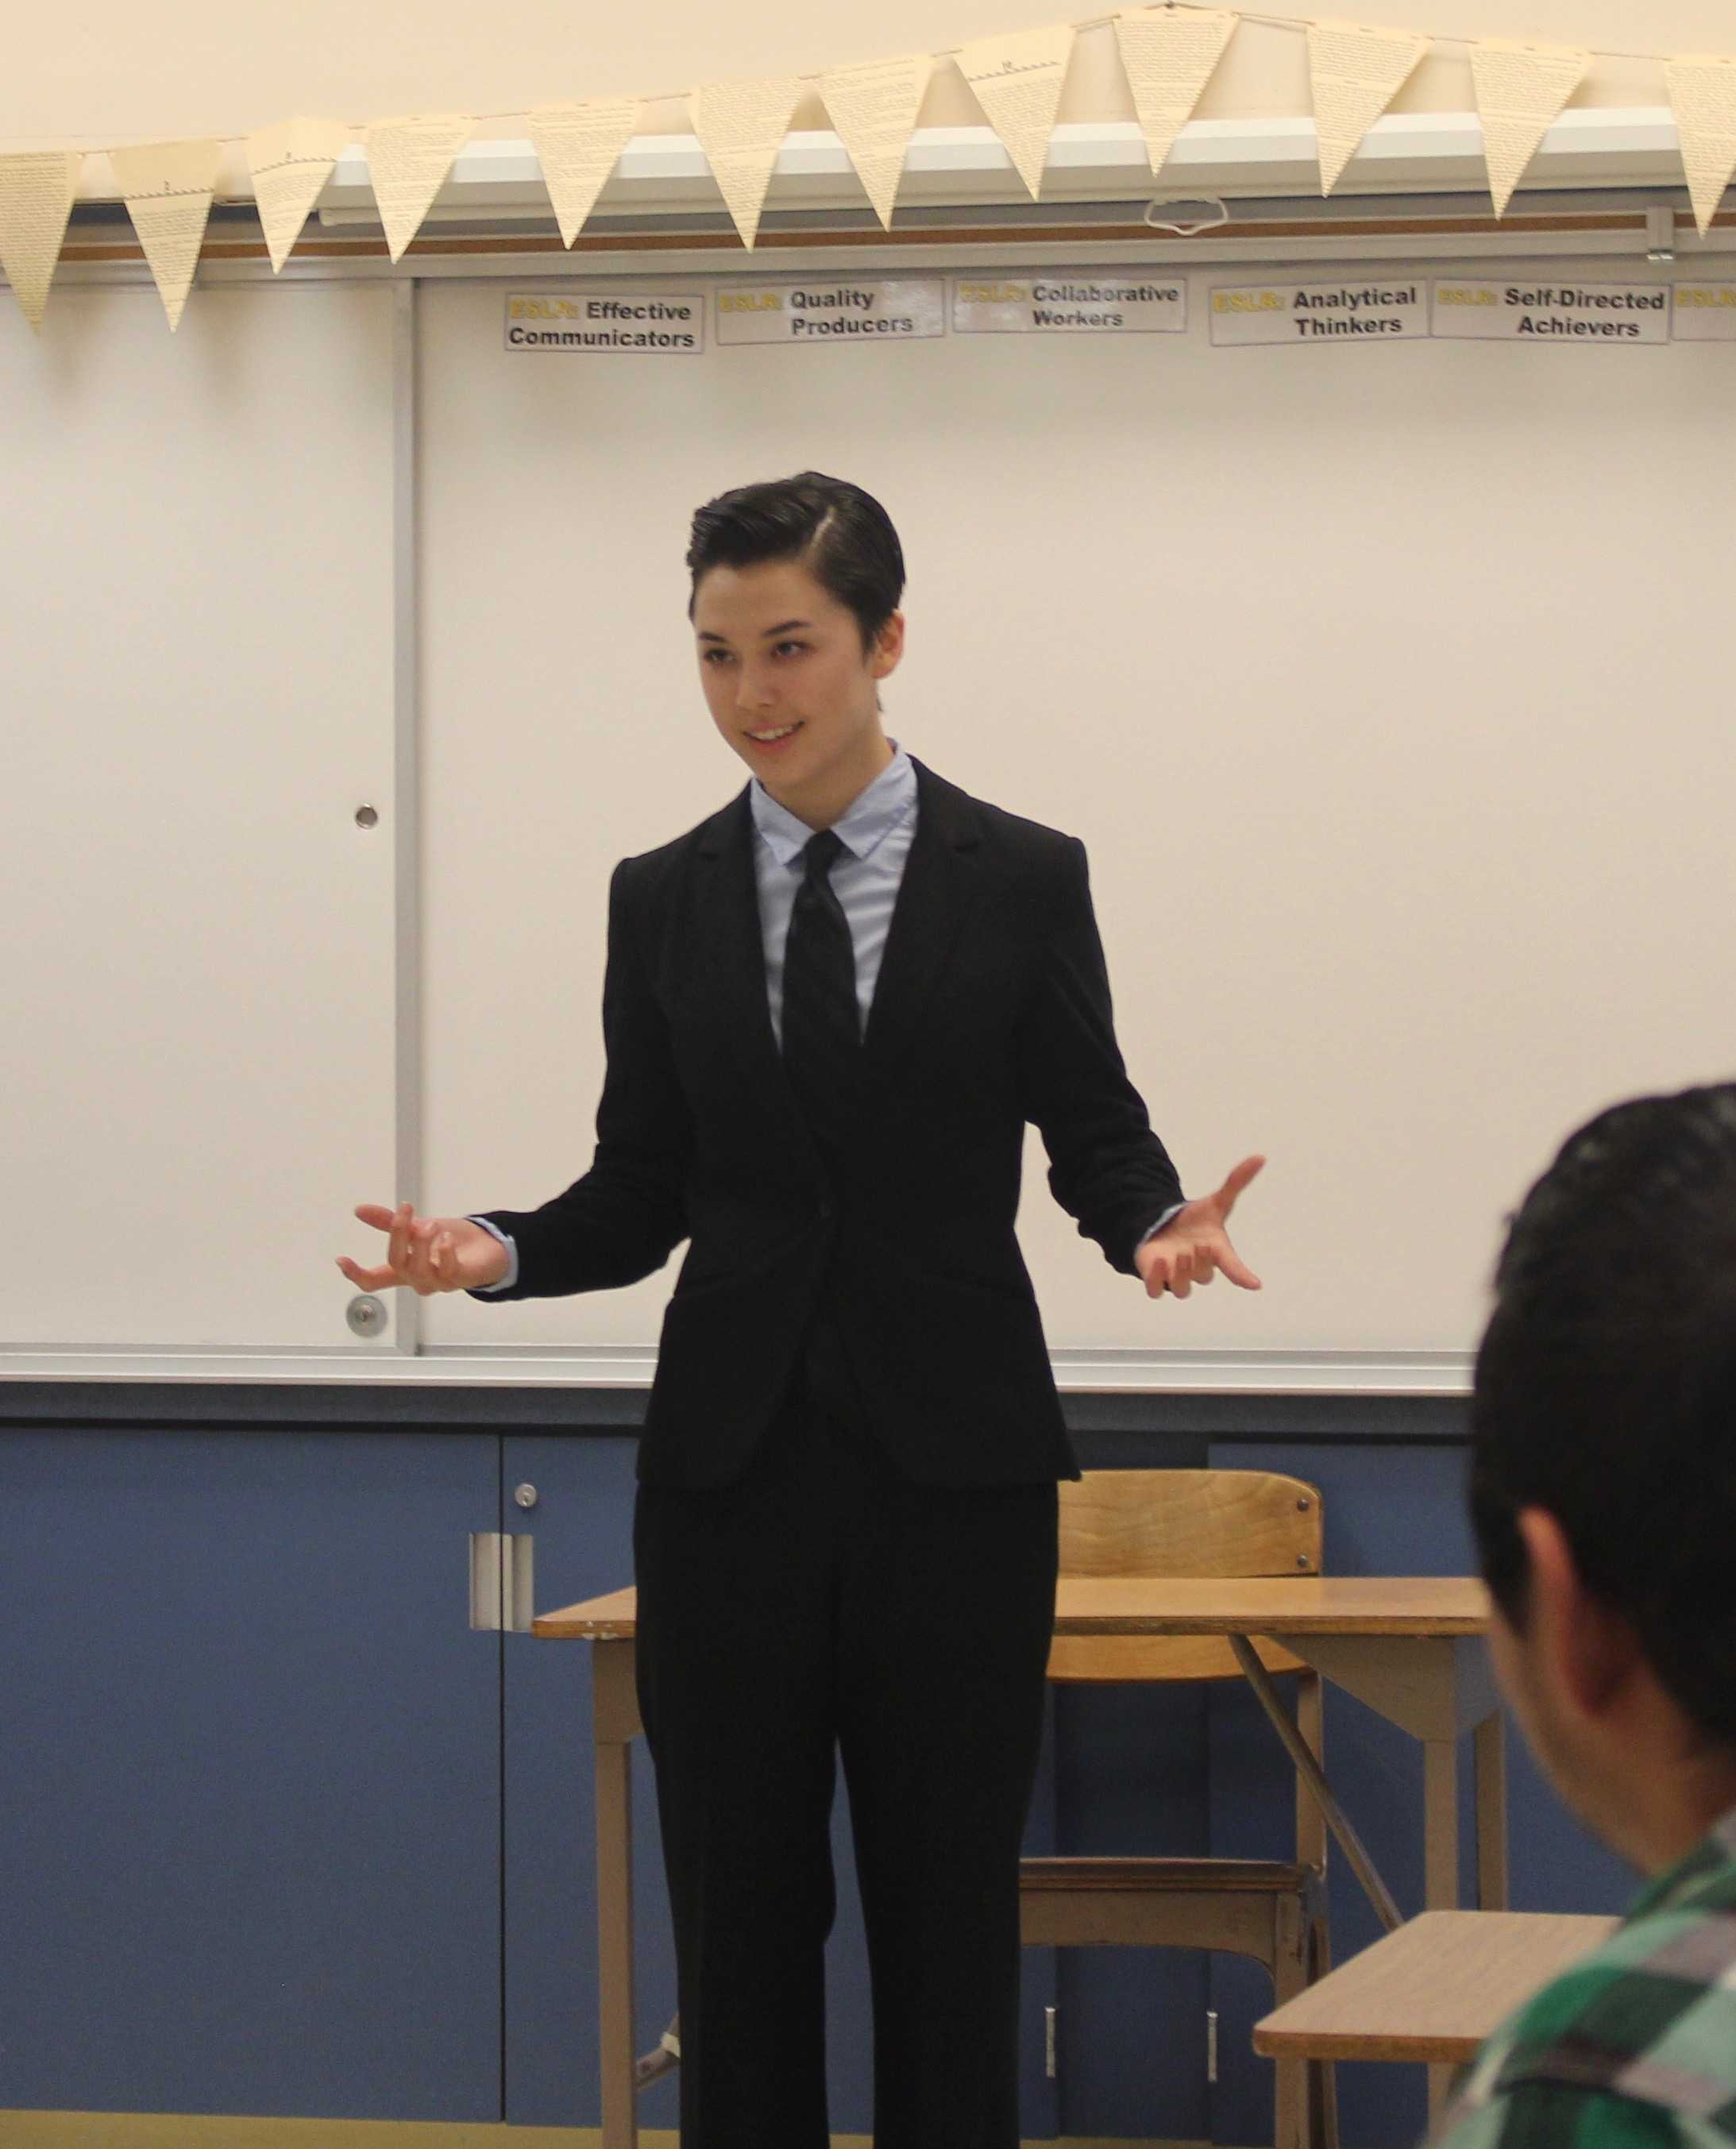 Rio Hondo Forensics Speech And Debate Team Co-hosts Annual